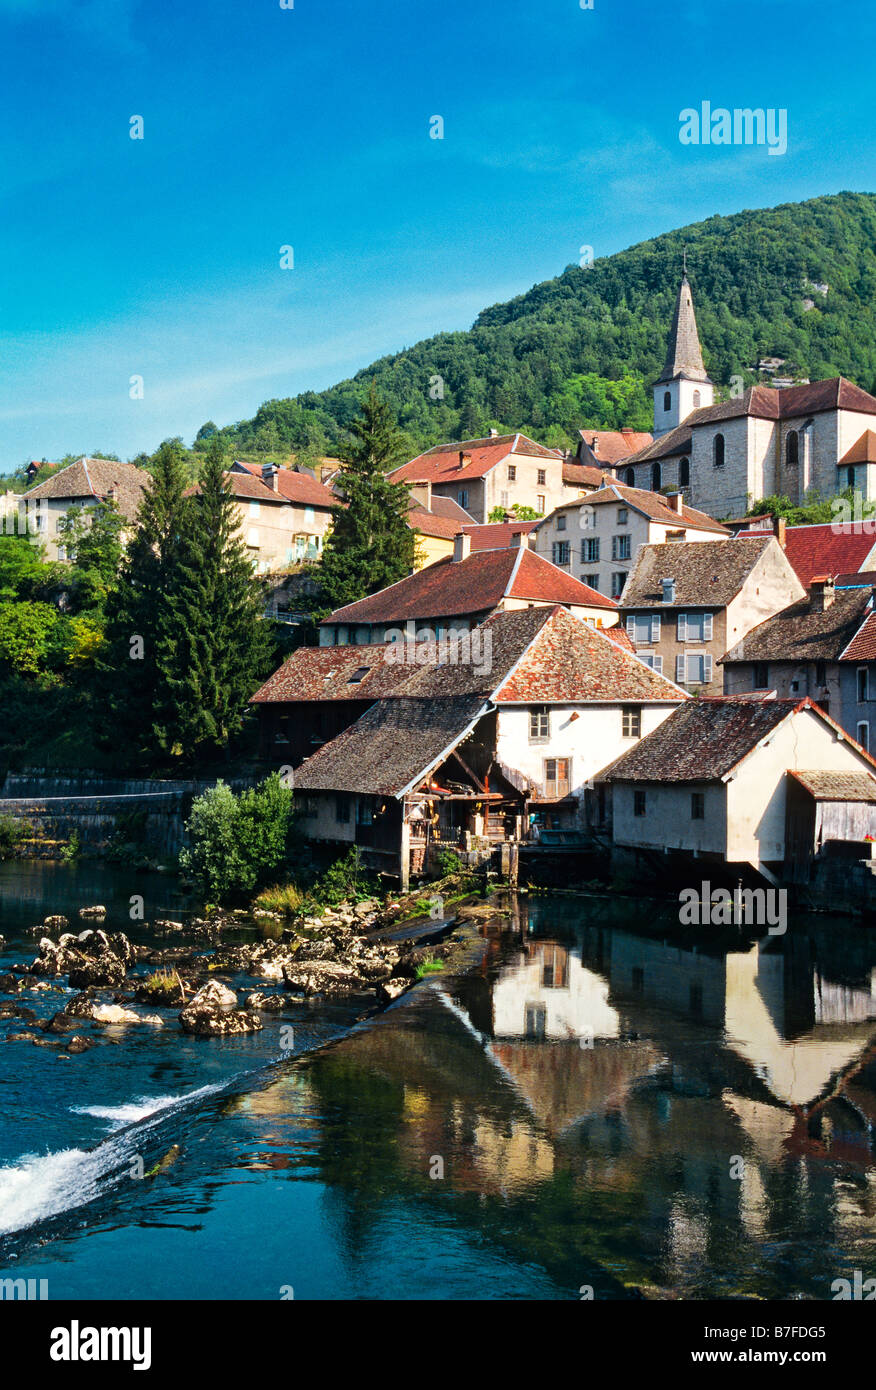 LODS LOUE VALLEY DOUBS FRANCHE COMTE FRANCE - Stock Image